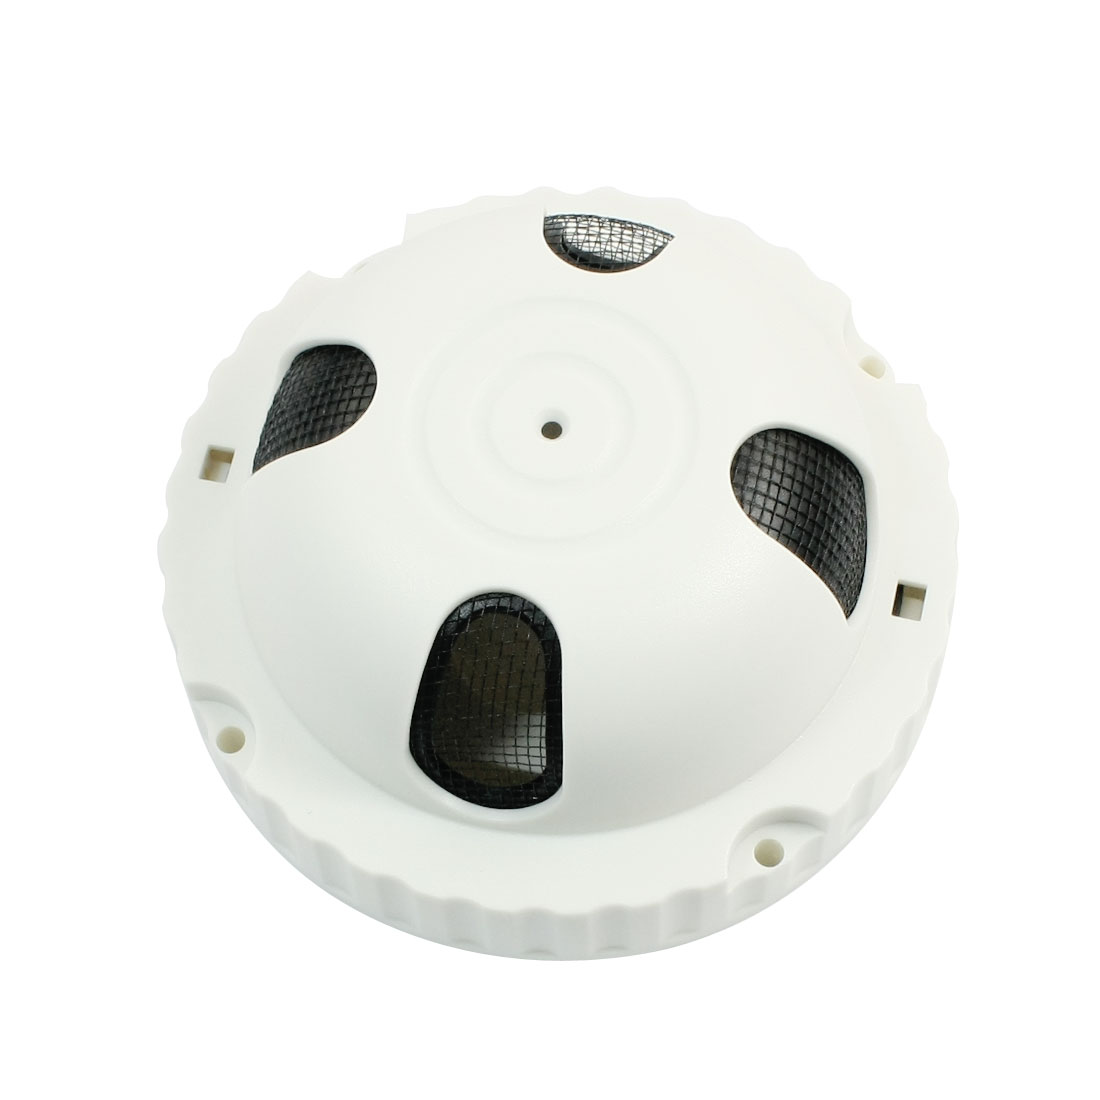 "Indoor Ceiling Mount CCD Dome Camera Plastic Housing 4.3"" Diameter"